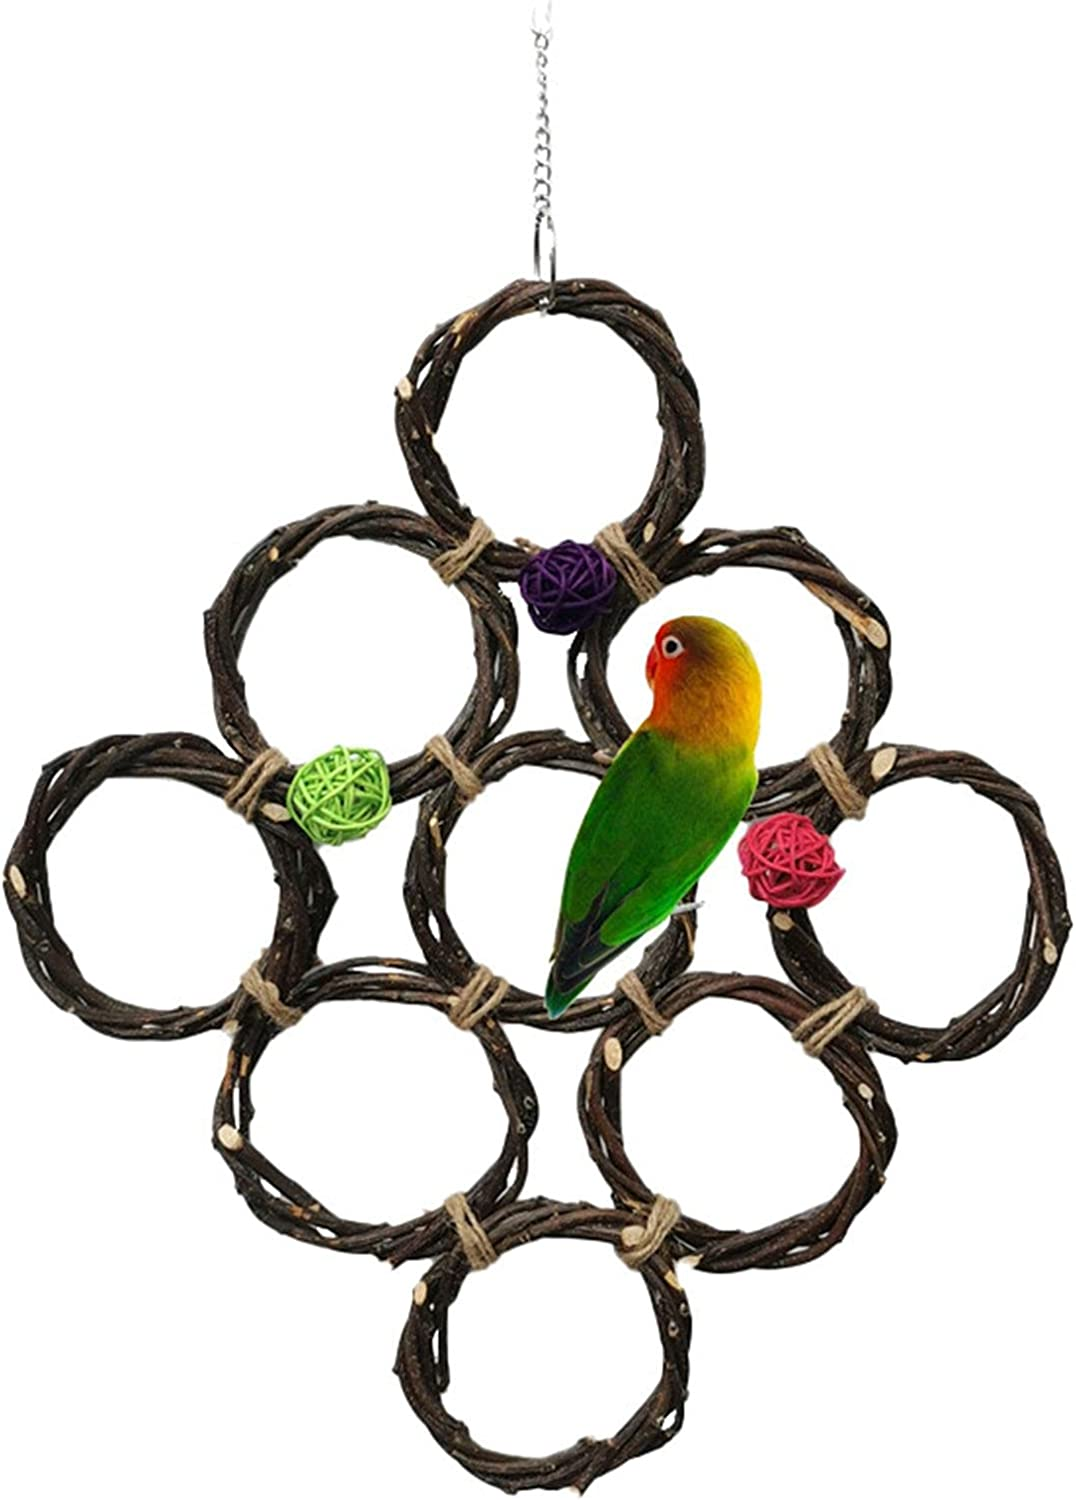 Parrot Swing Hanging Toy Climbing Bird Apple Max 63% Ranking TOP3 OFF From Rope Made